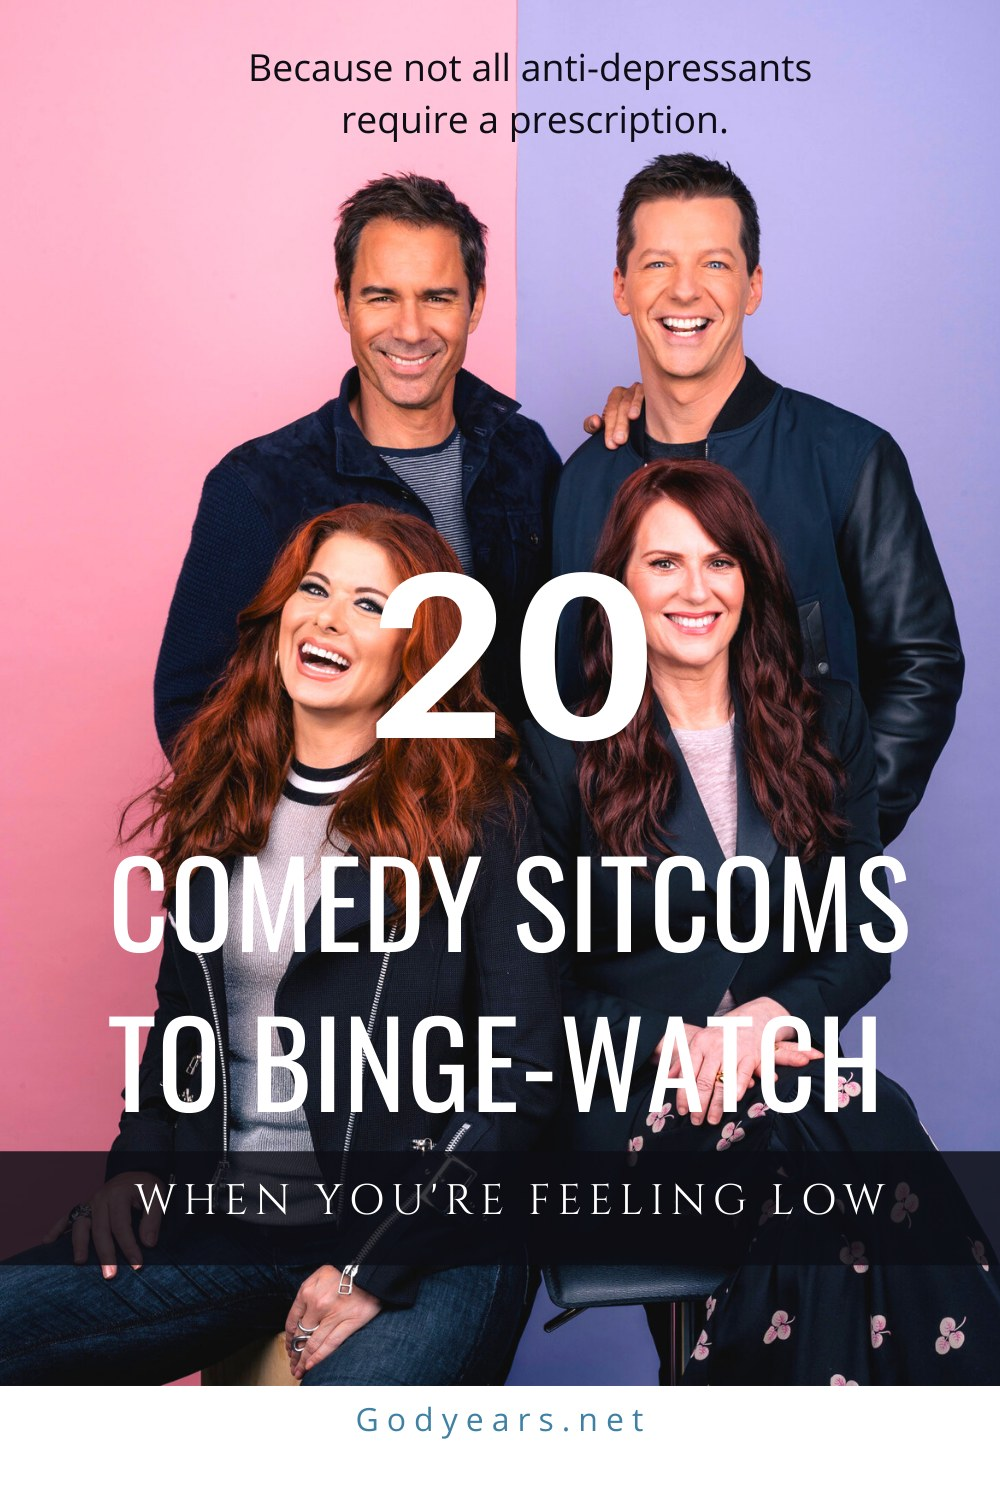 A List of 20 Comedy Sitcoms to Binge Watch when you are feeling low